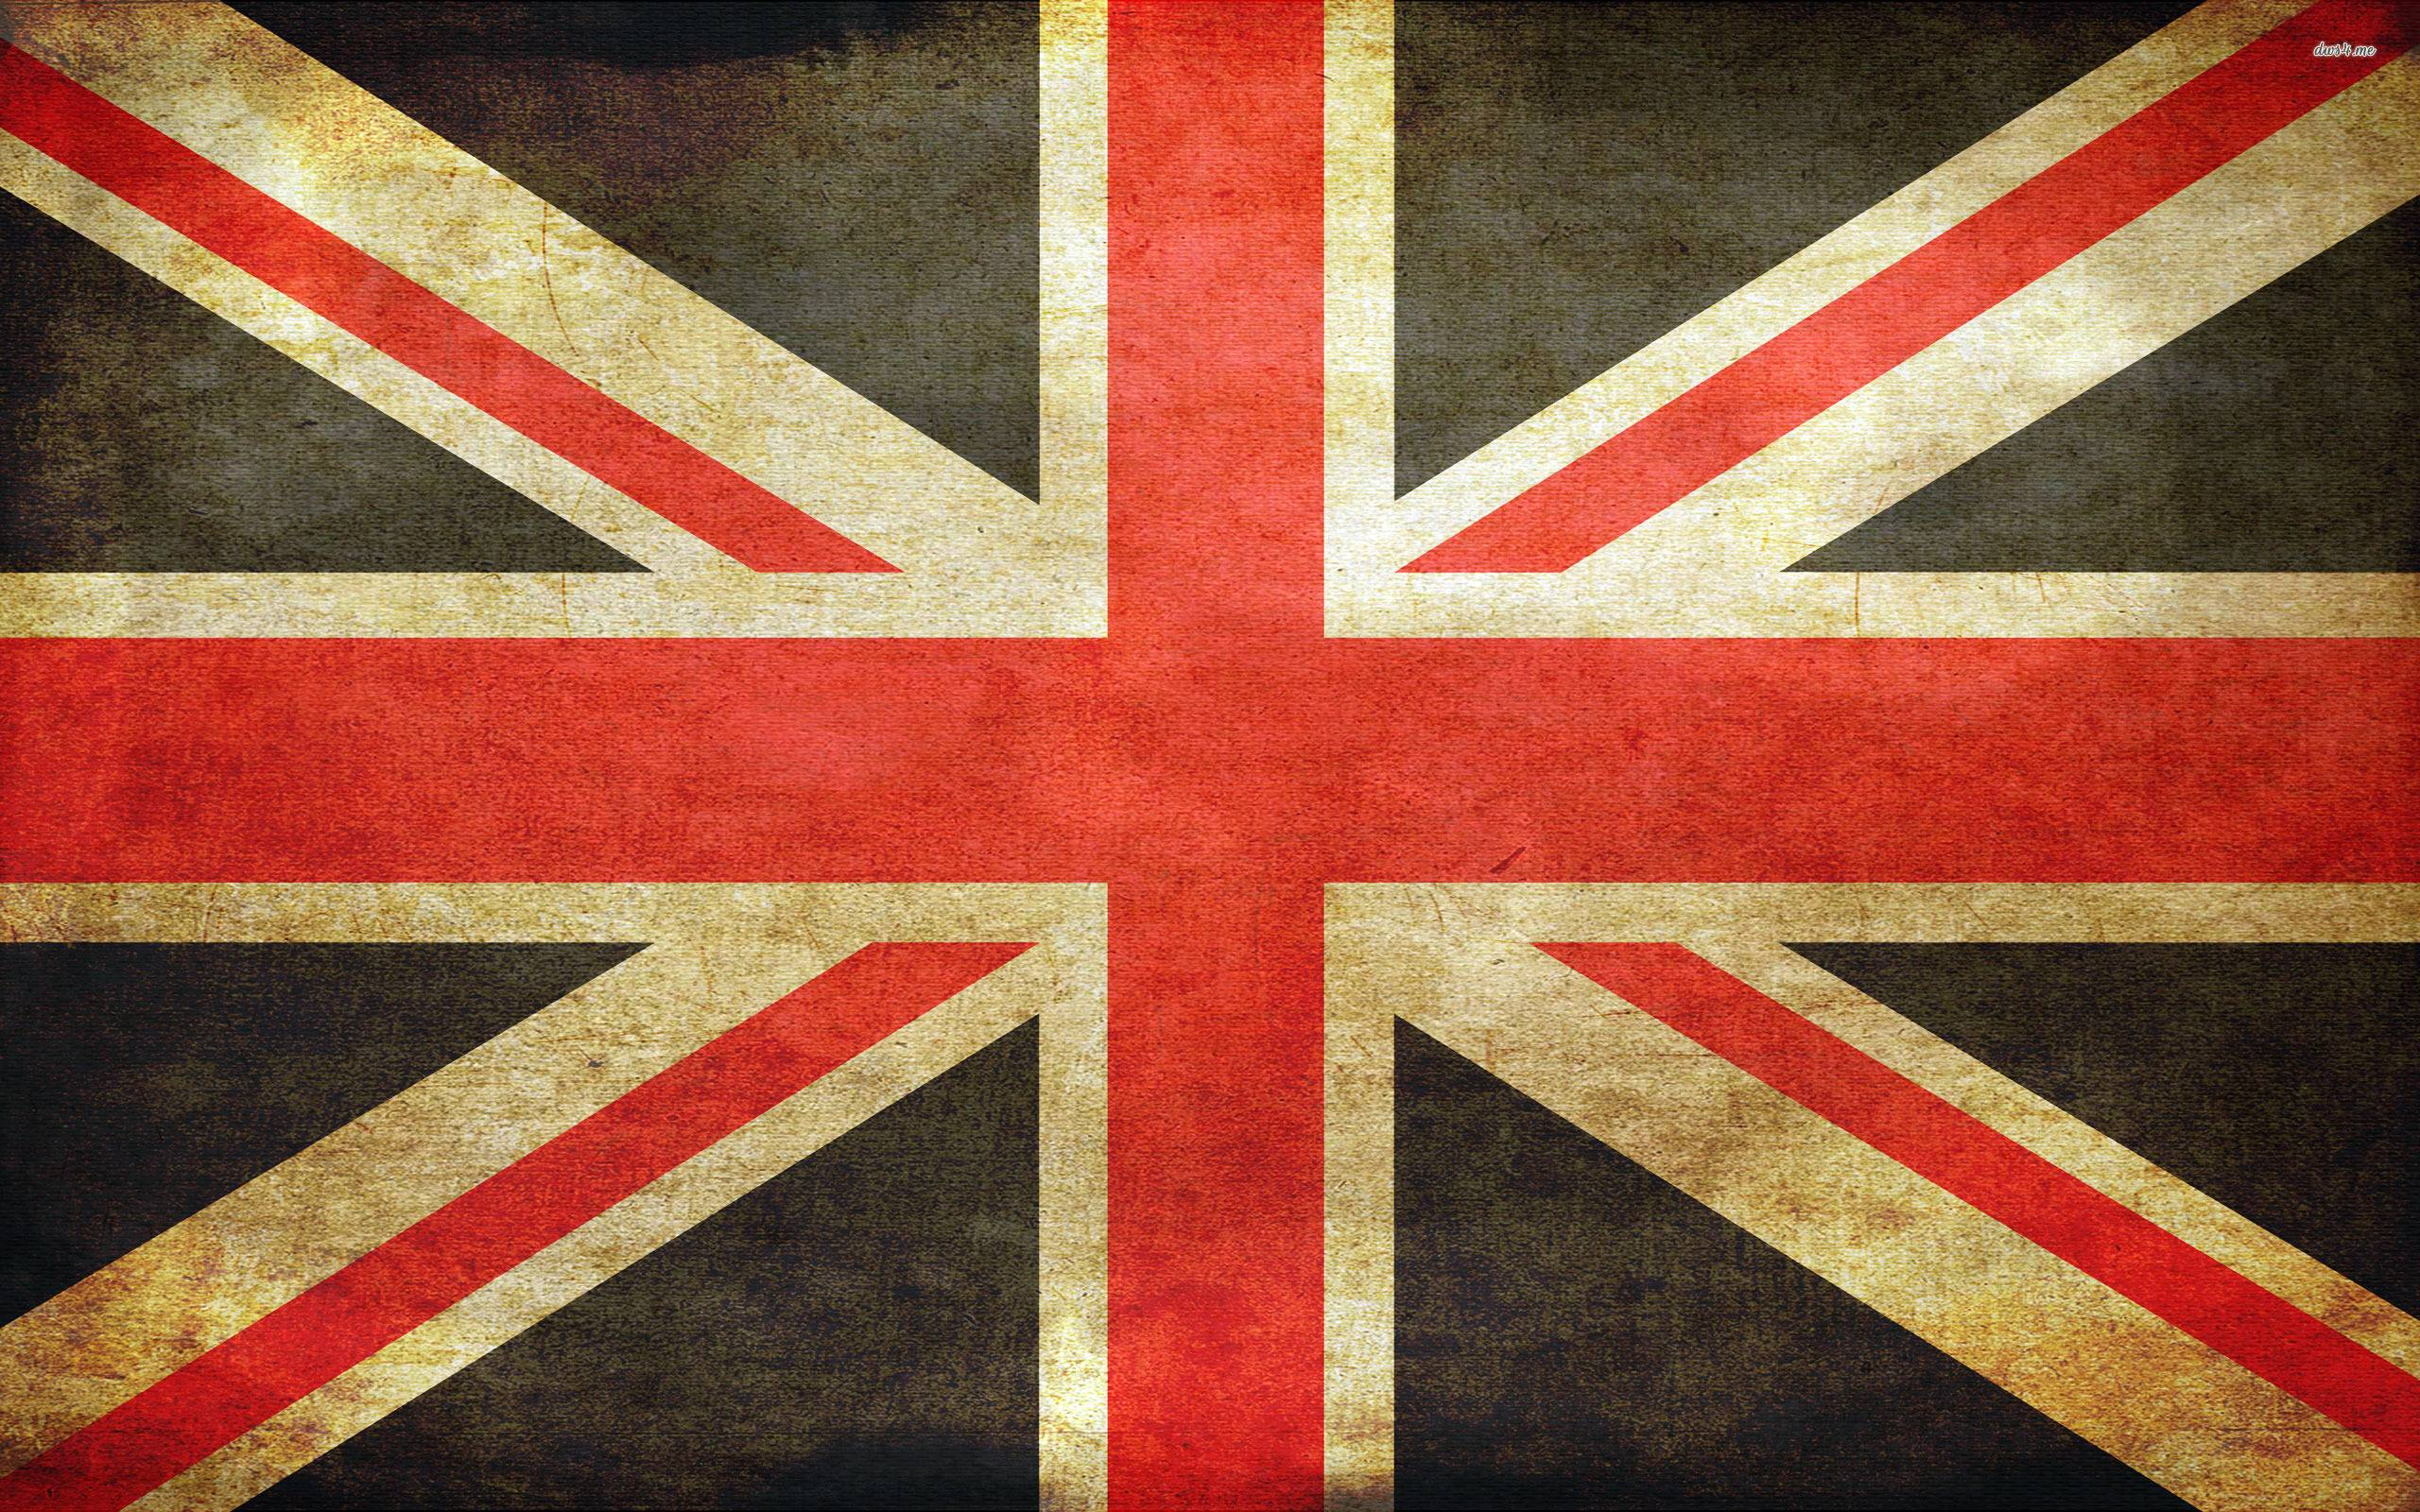 United Kingdom Flag Digital Art | DIGITAL ART